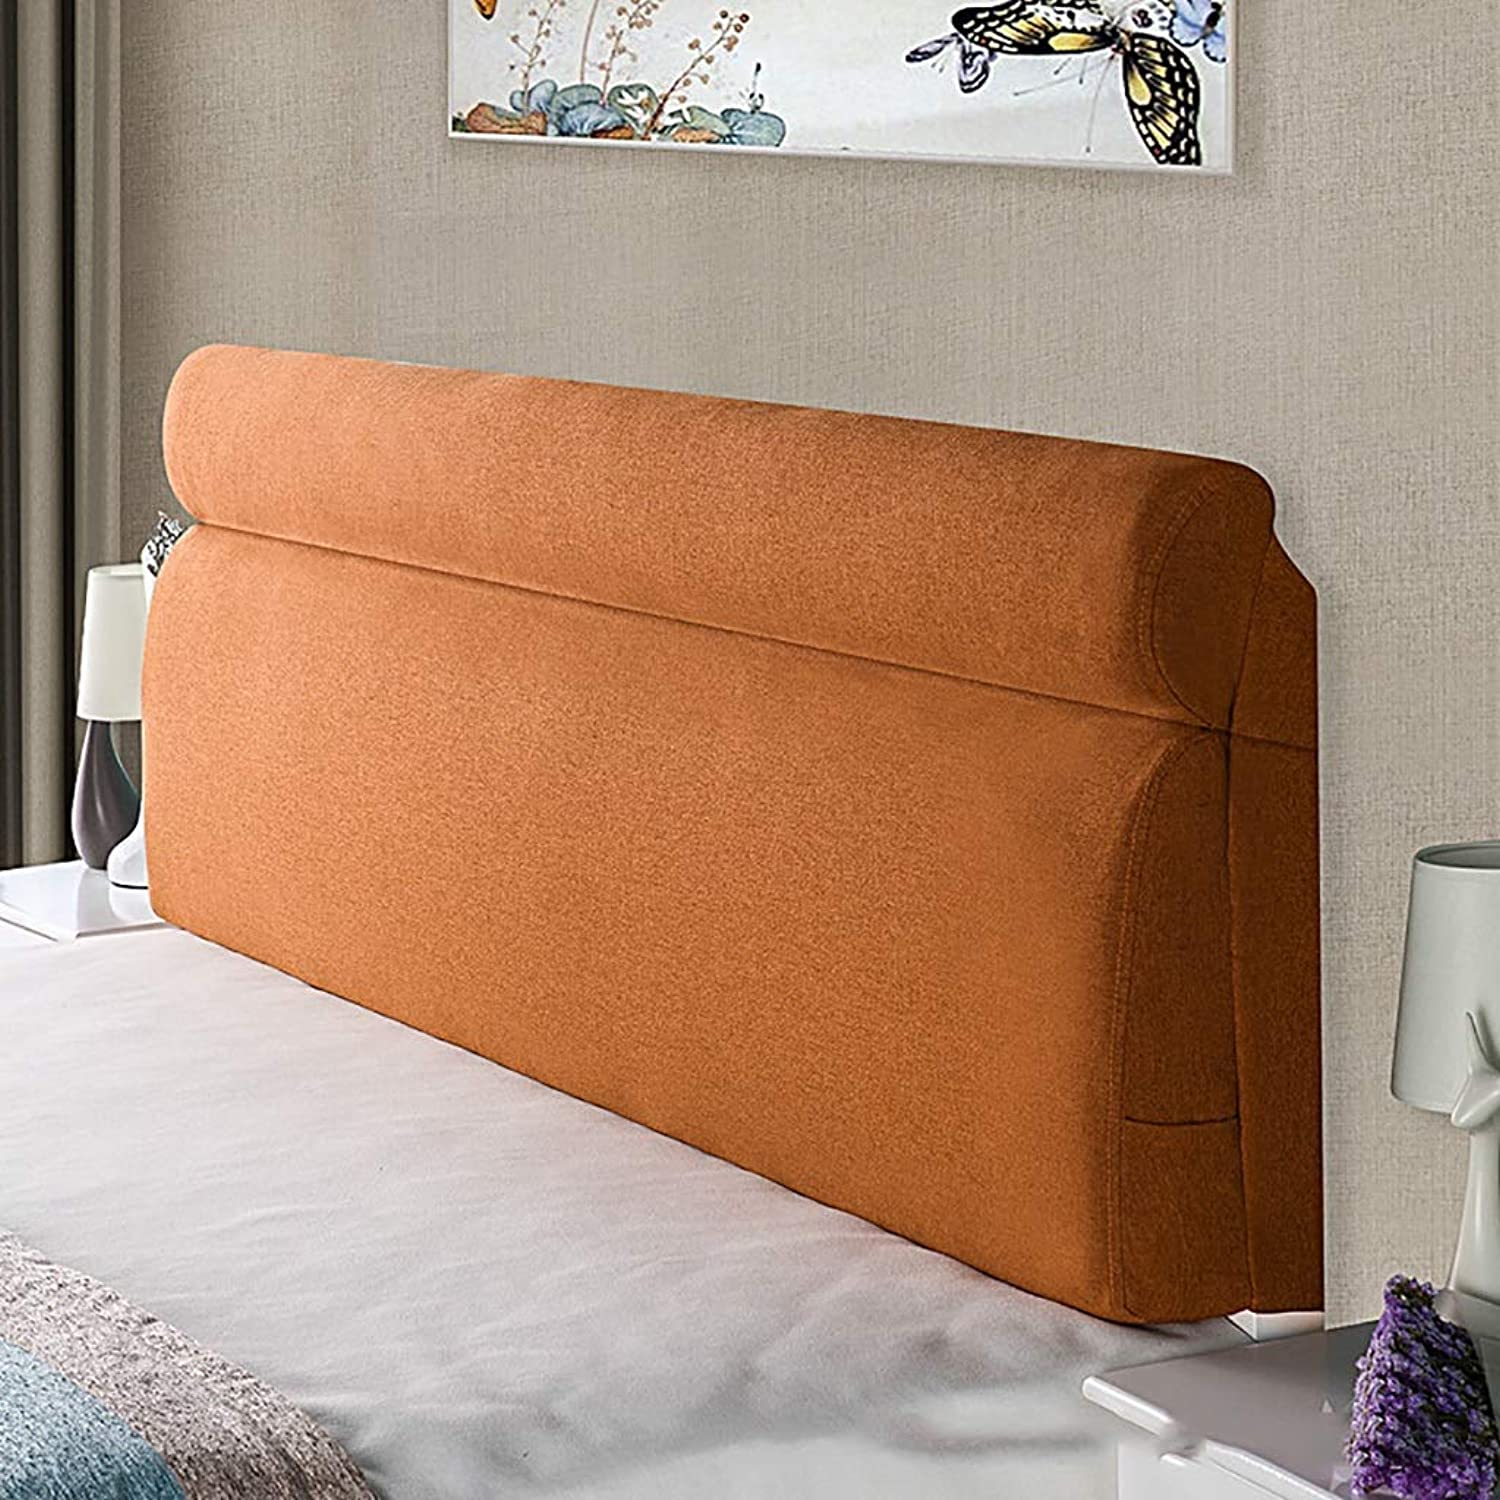 Large Soft Upholstered Headboard Cushion Wall Pillow Lumbar Pad Bed Backrest Breathable Removable Washable (color   D, Size   120CM)